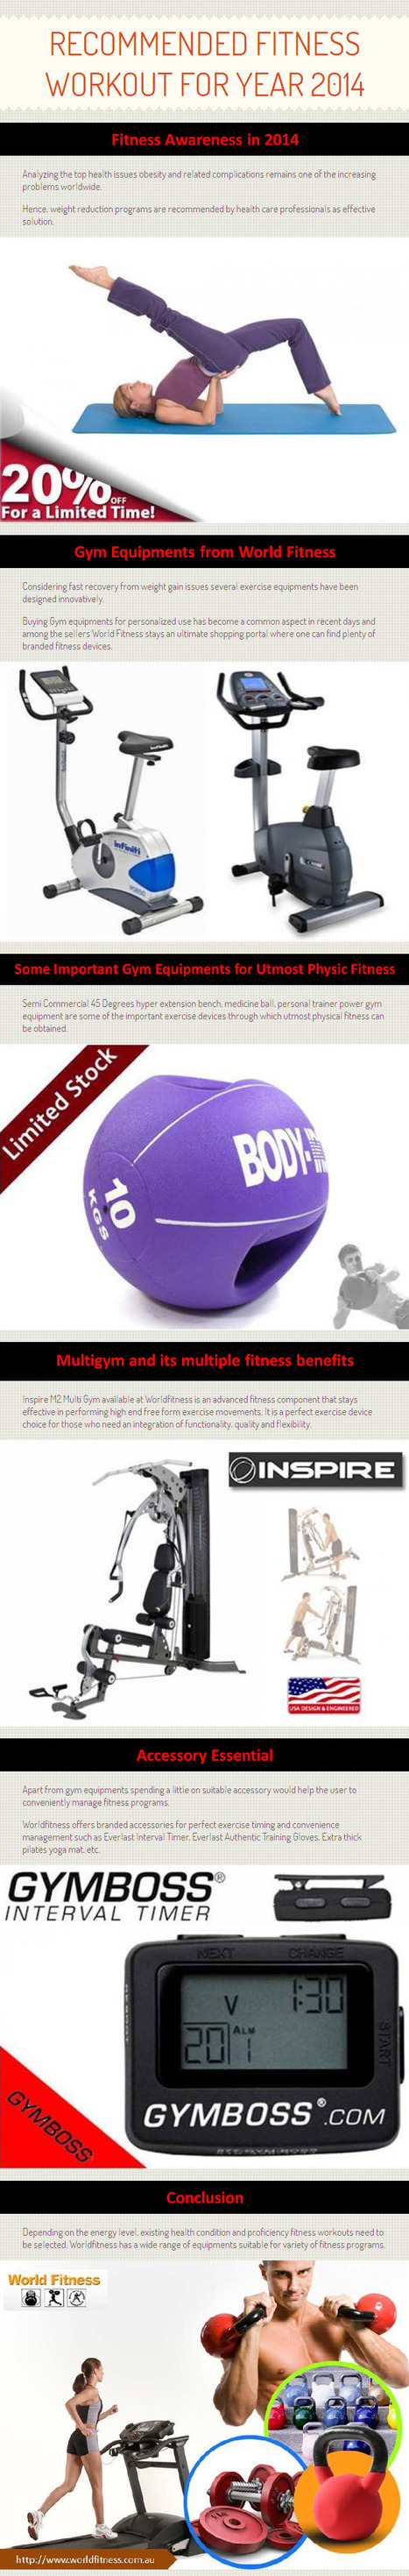 Recommended Fitness Workout for year 2014 by www.worldfitness.com.au   worldfitness   Scoop.it